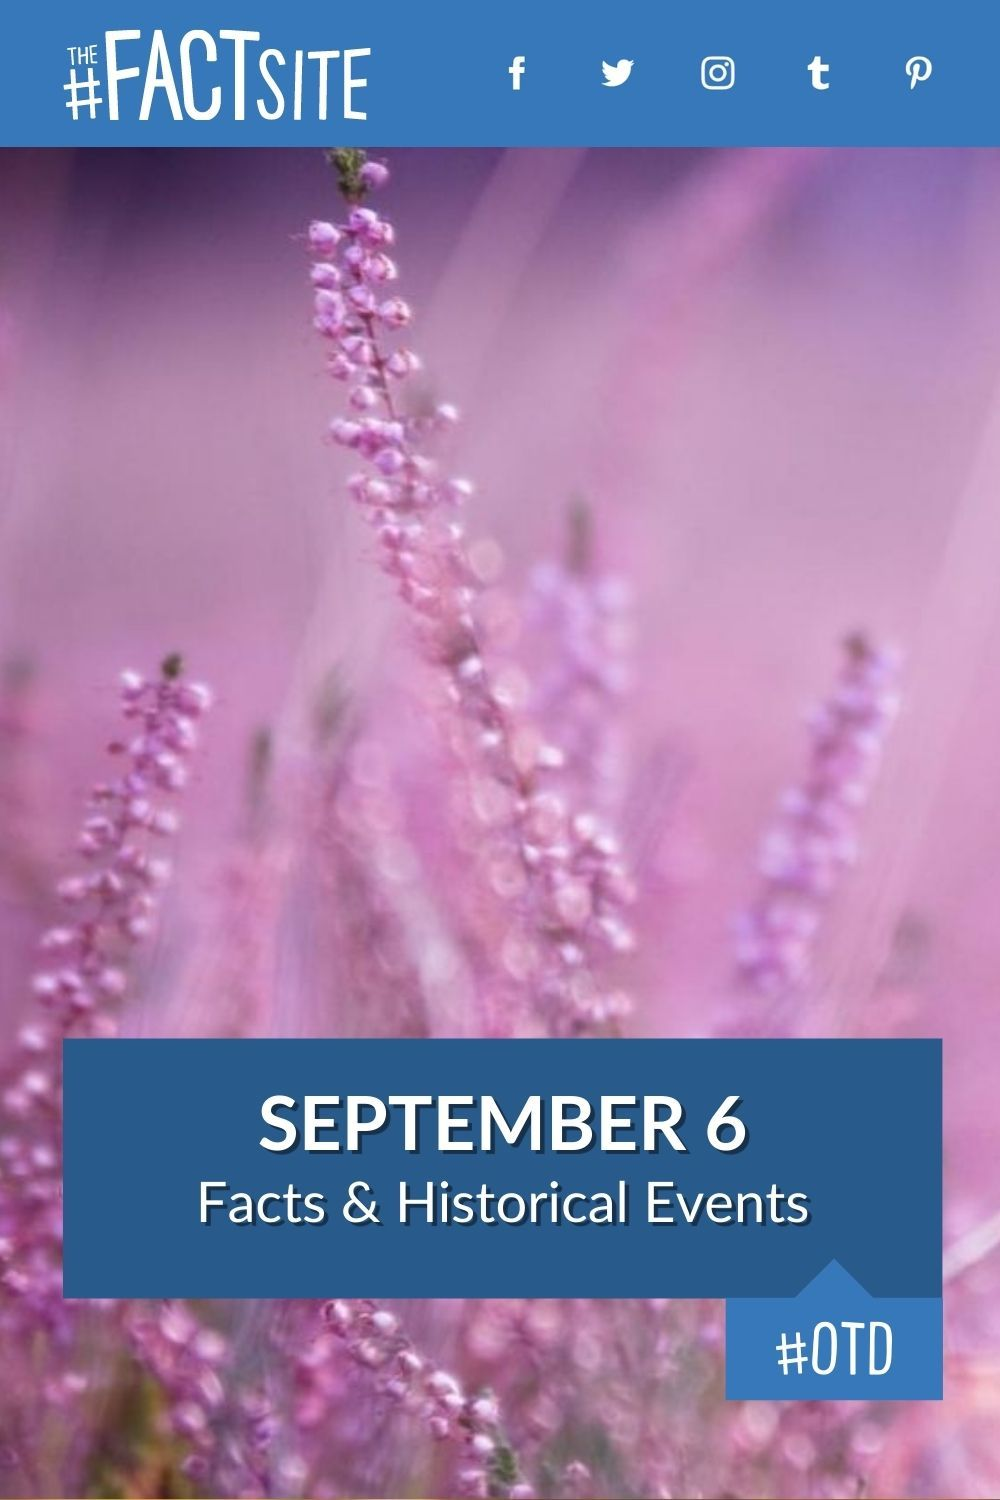 Facts & Historic Events That Happened on September 6